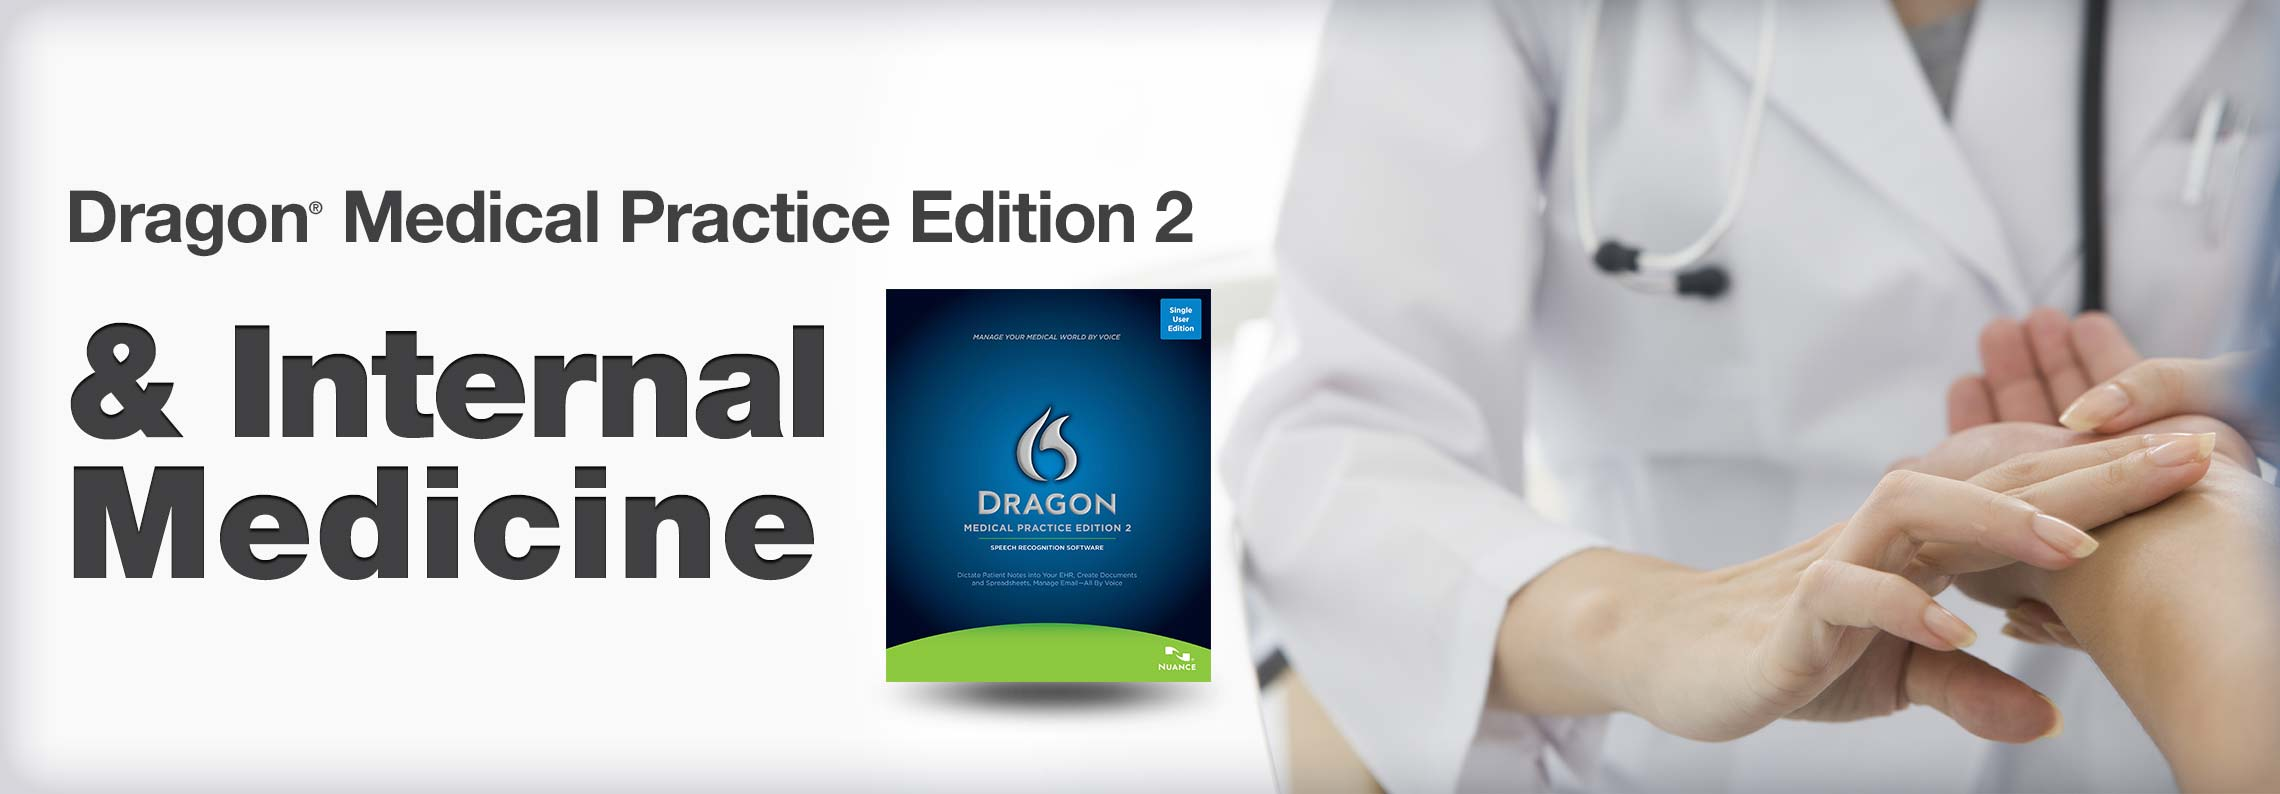 dragon medical practice edition 4 review